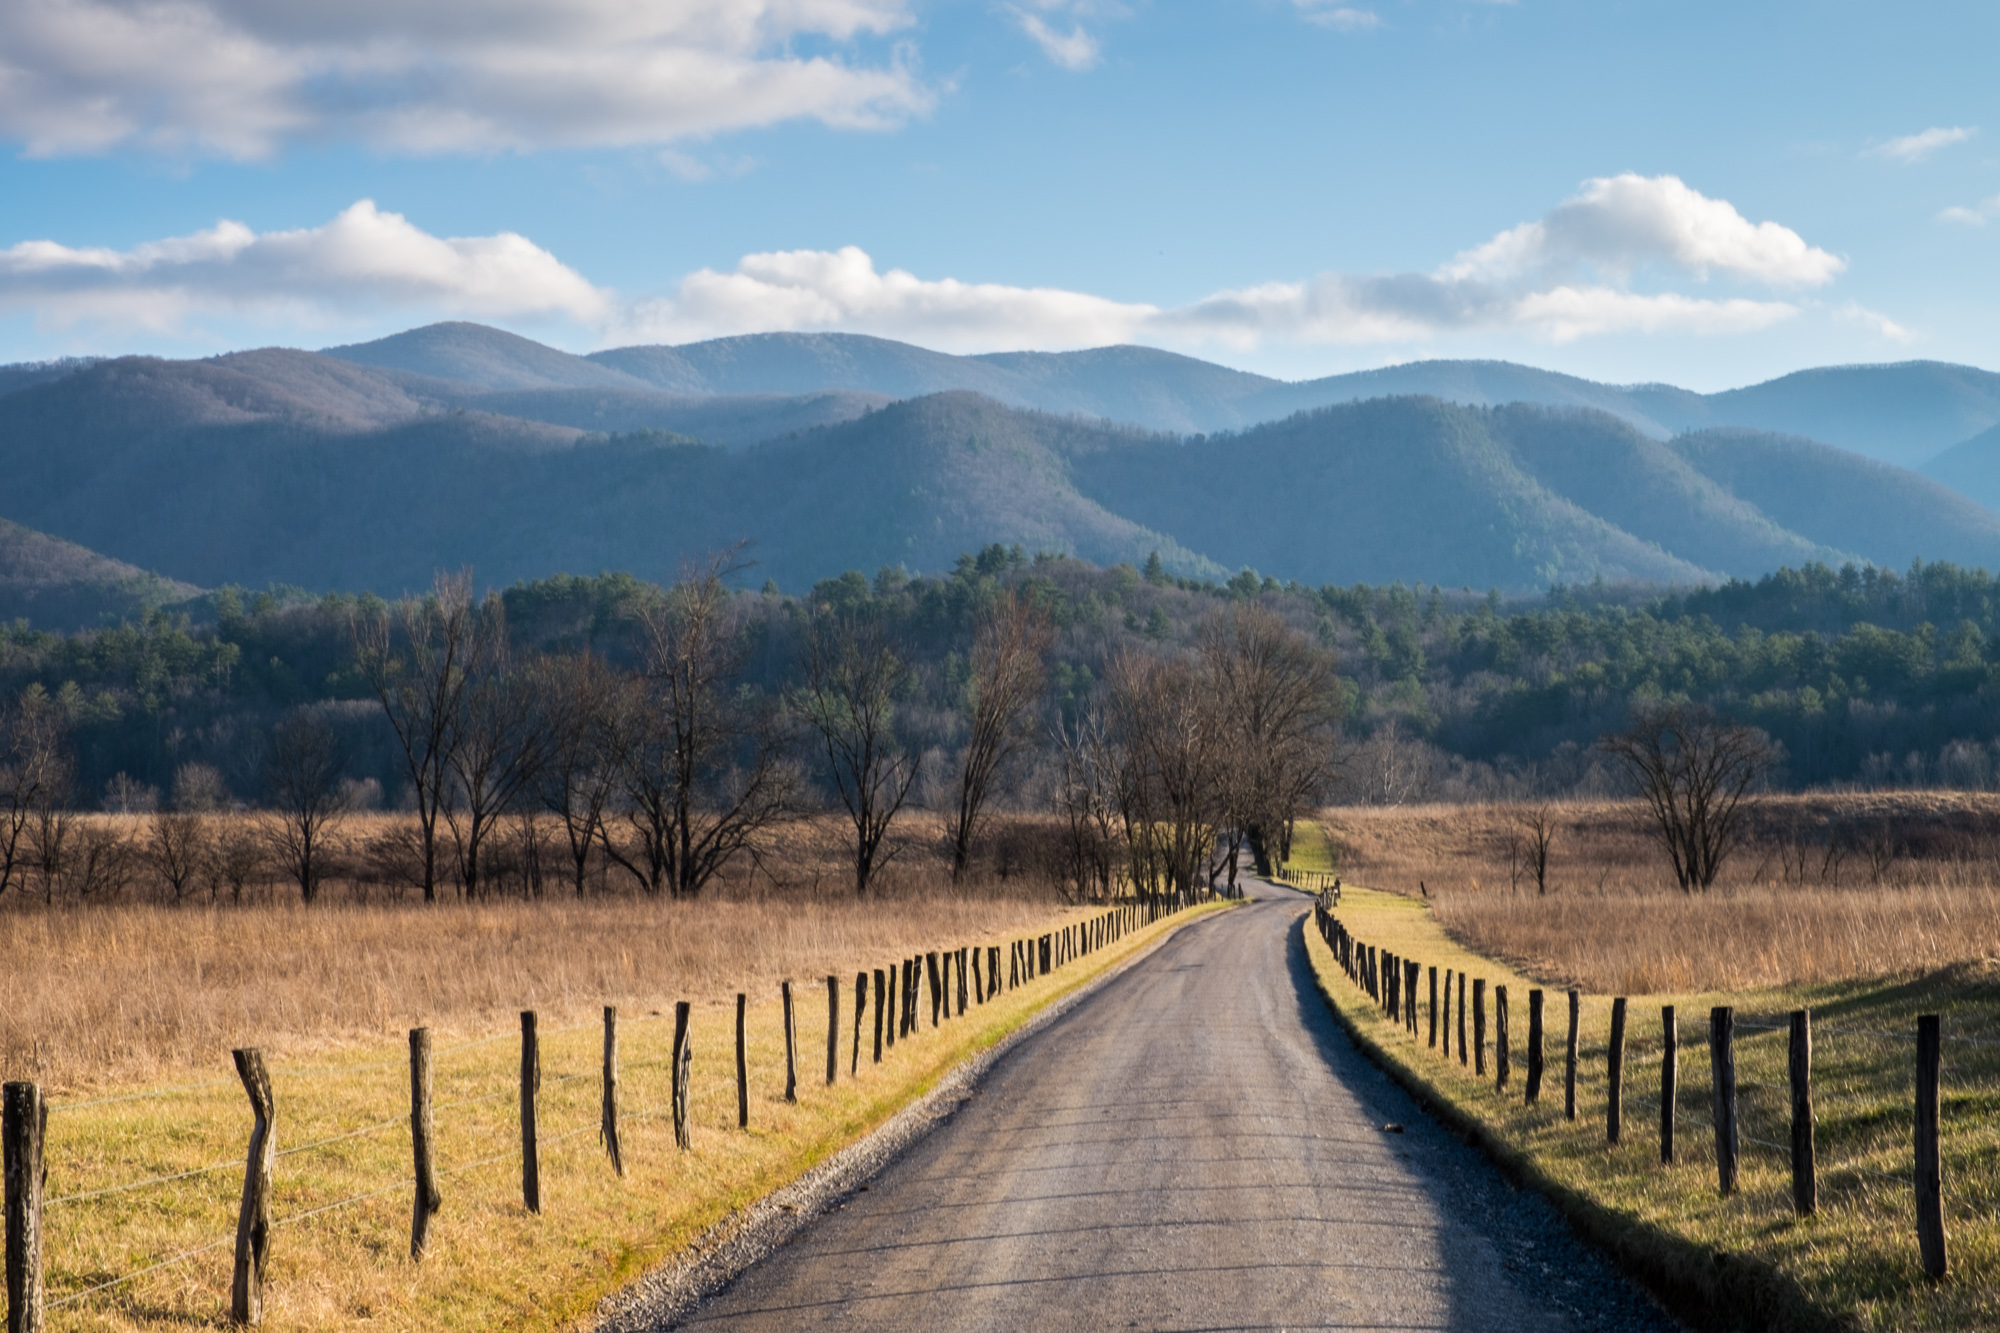 We had some beautiful views in Cade's Cove.